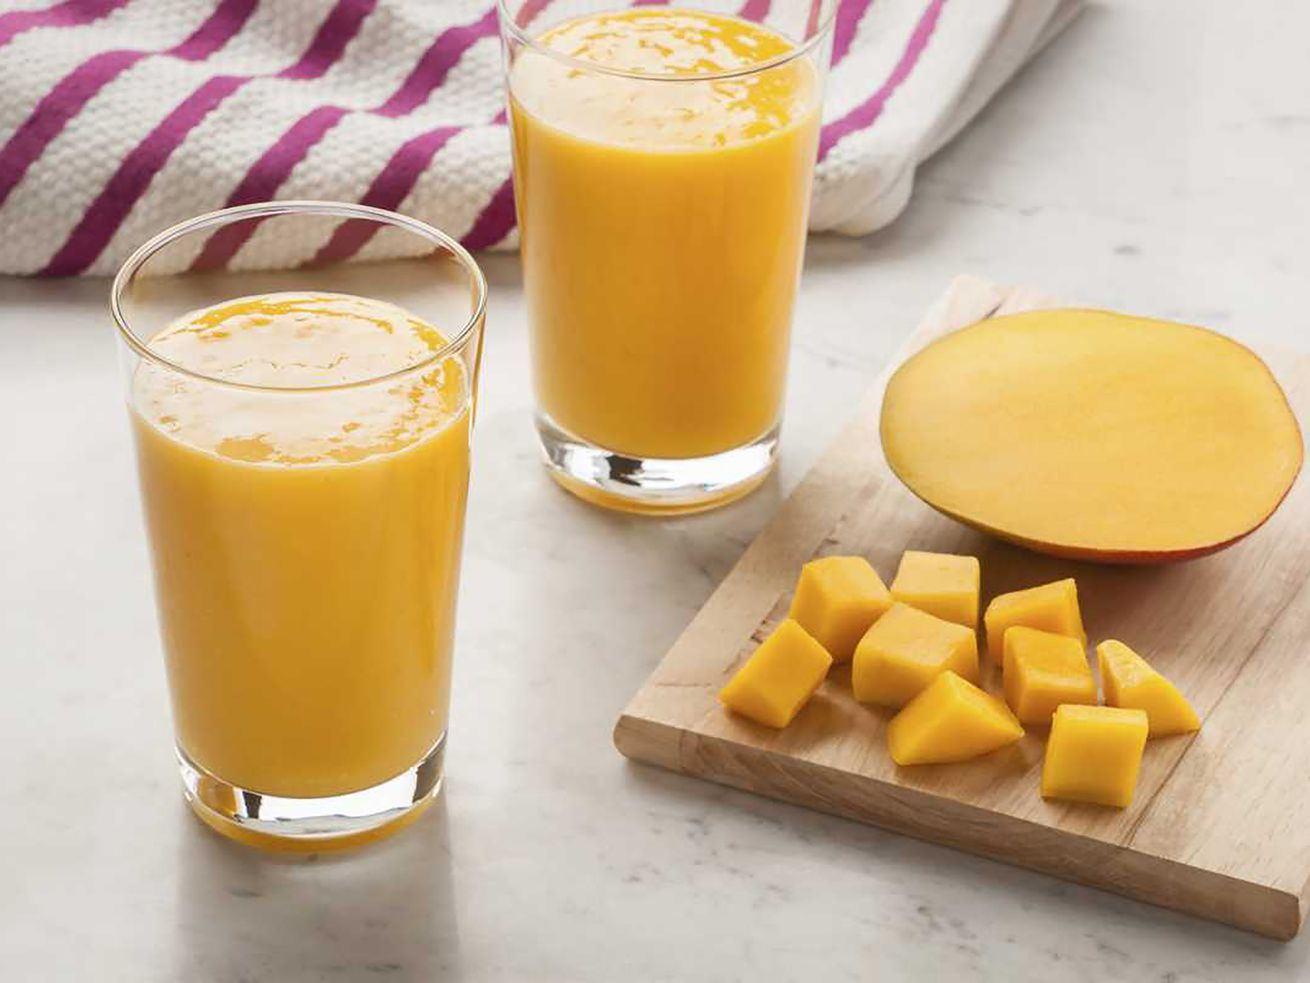 Menu planner: Mango and banana smoothie makes an ideal dessert